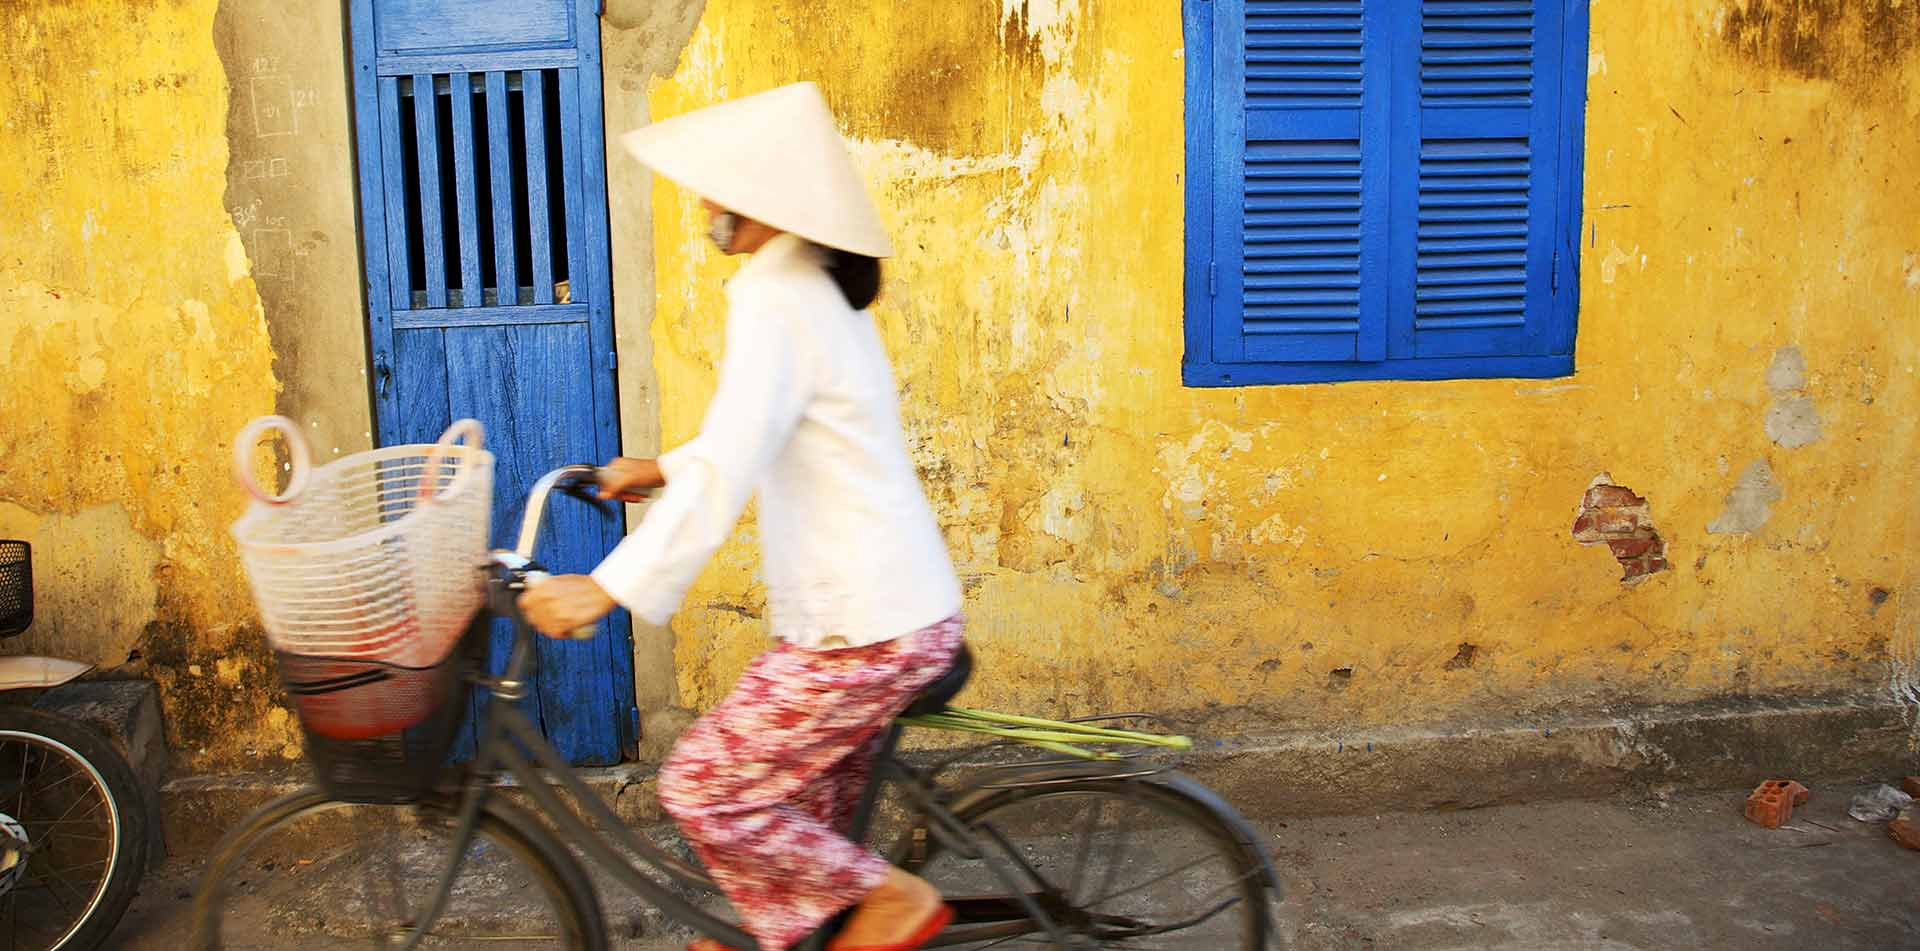 Woman on a Bicycle, Vietnam